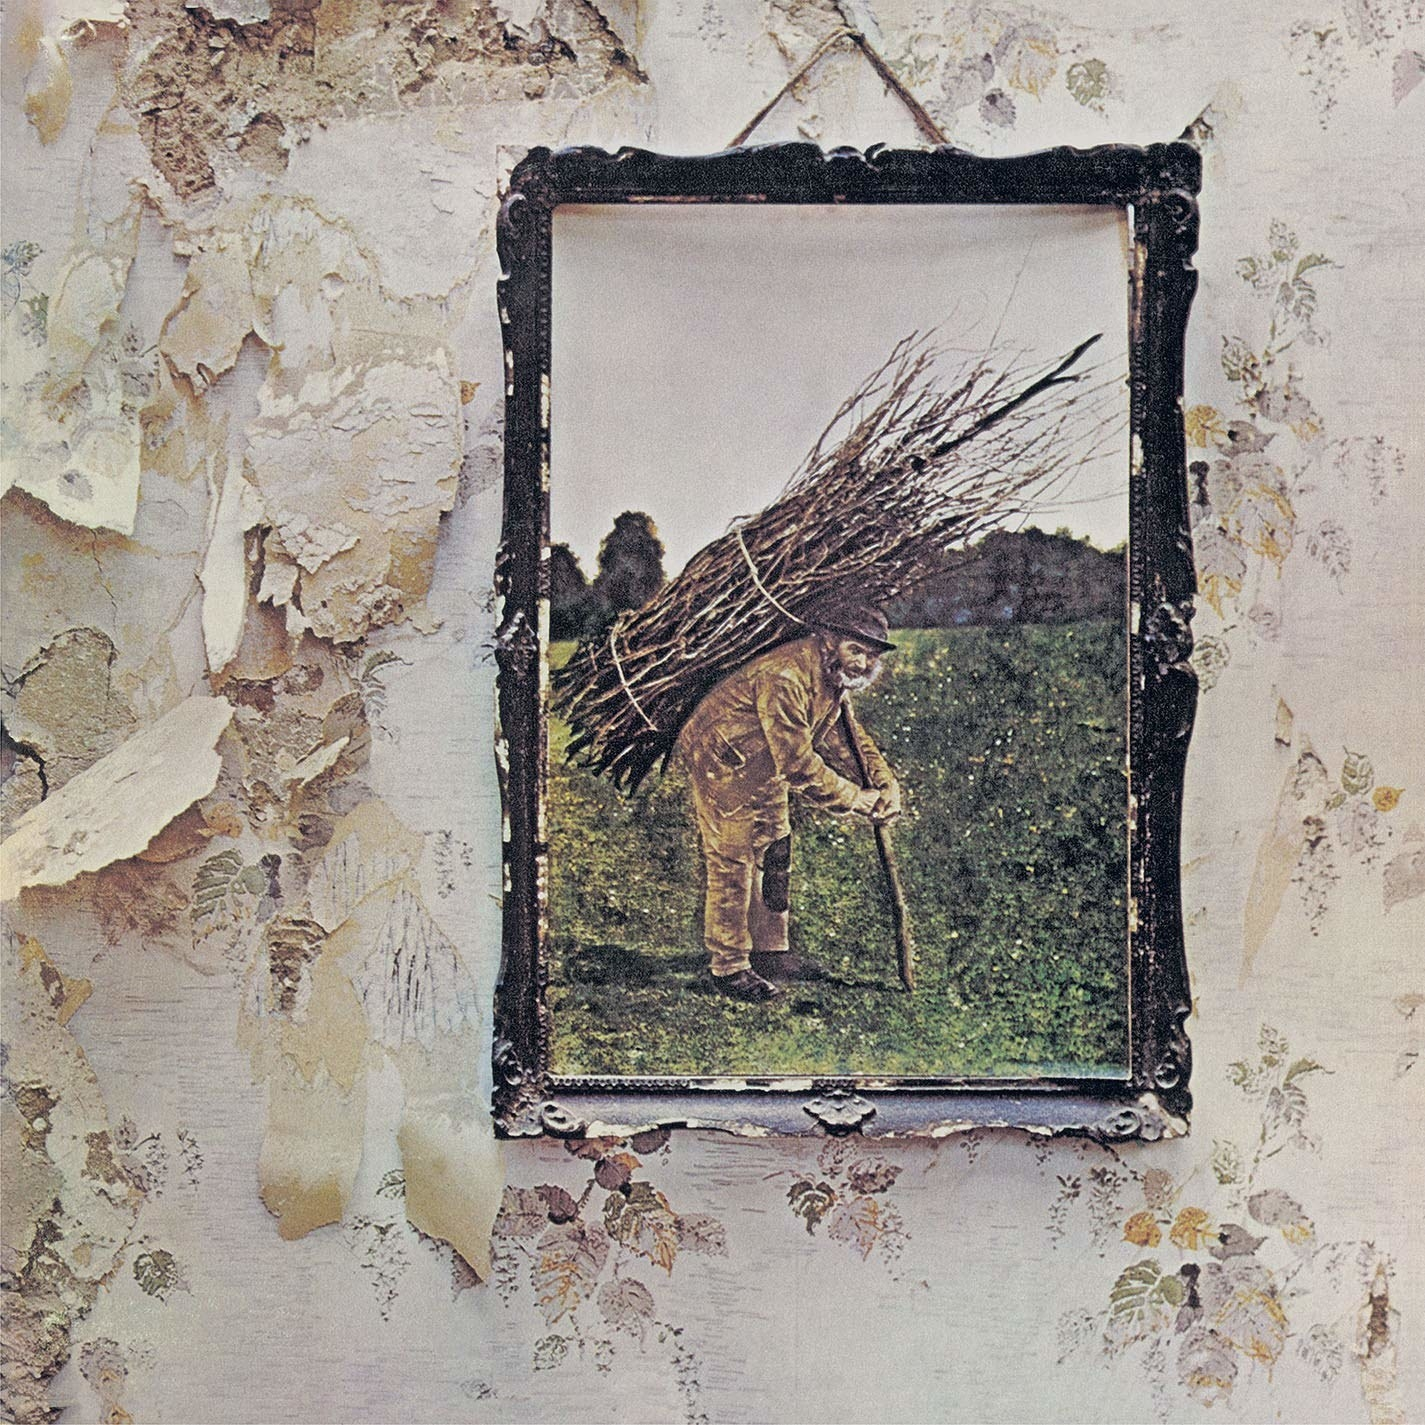 album cover of Led Zeppelin IV showing a framed image of an old man carrying a bundle of sticks on his back, hanging on a wall with worn and peeling wallpaper